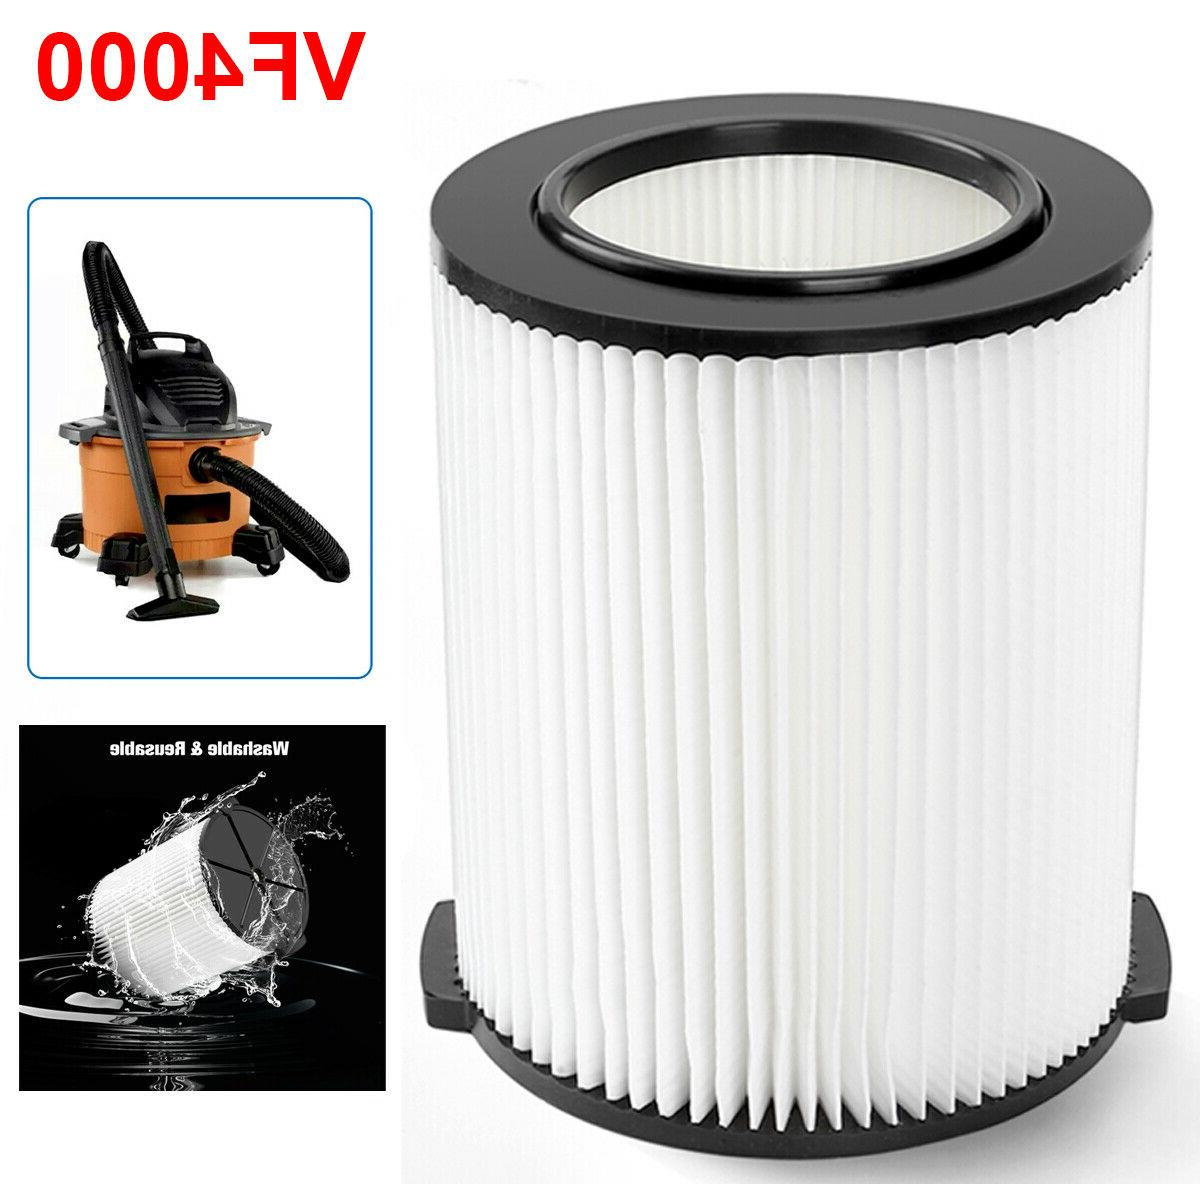 Replacement VF4000 Vacs Compatible 5-20 Wet/Dry